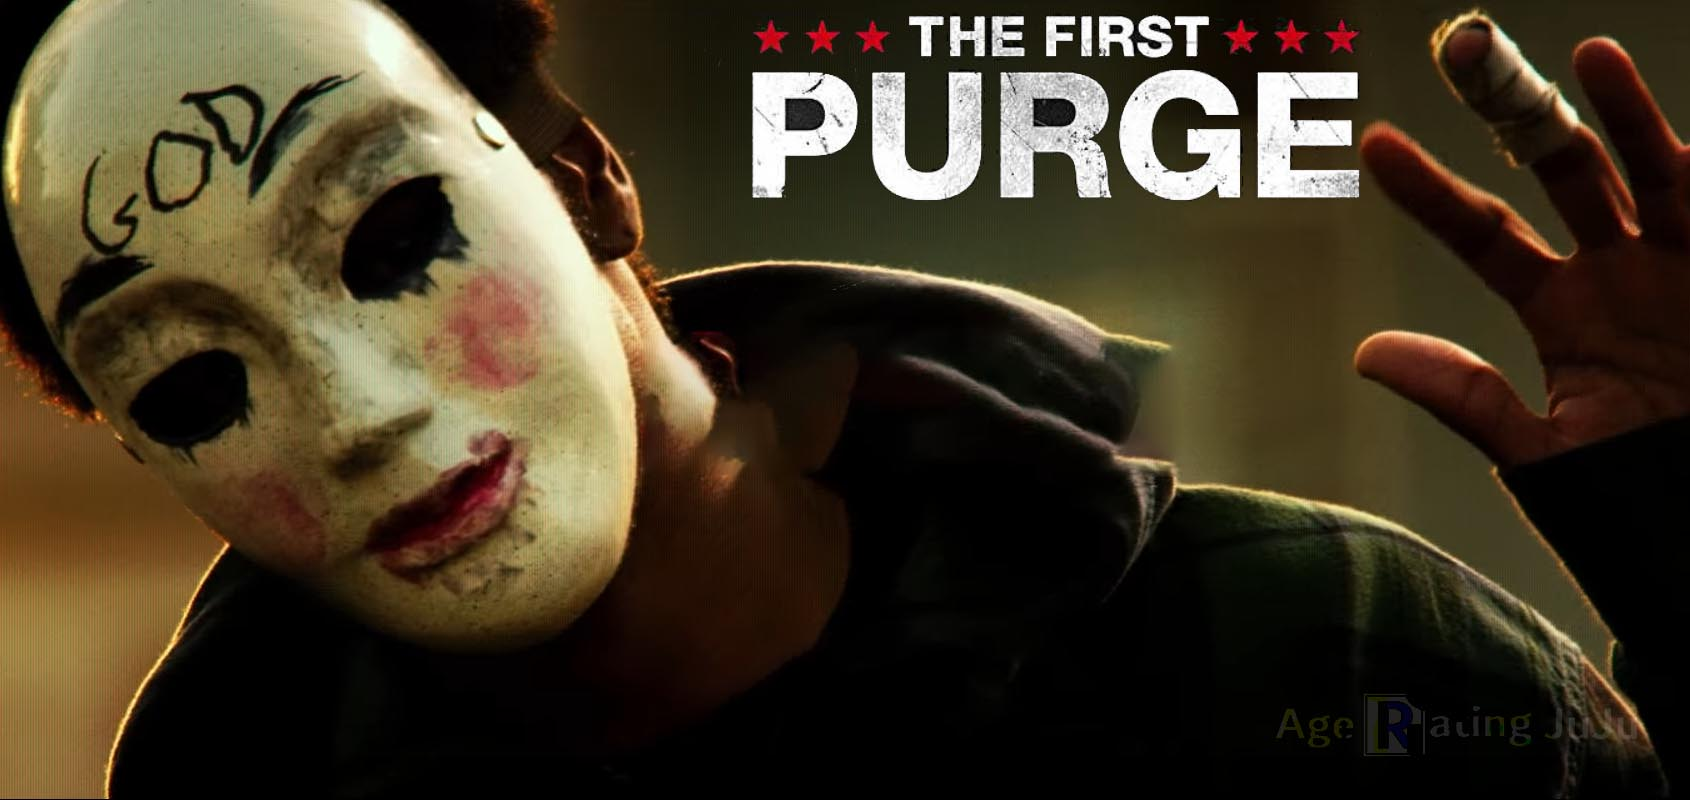 The First Purge 2018 Movie Wallpapers: The First Purge Age Rating